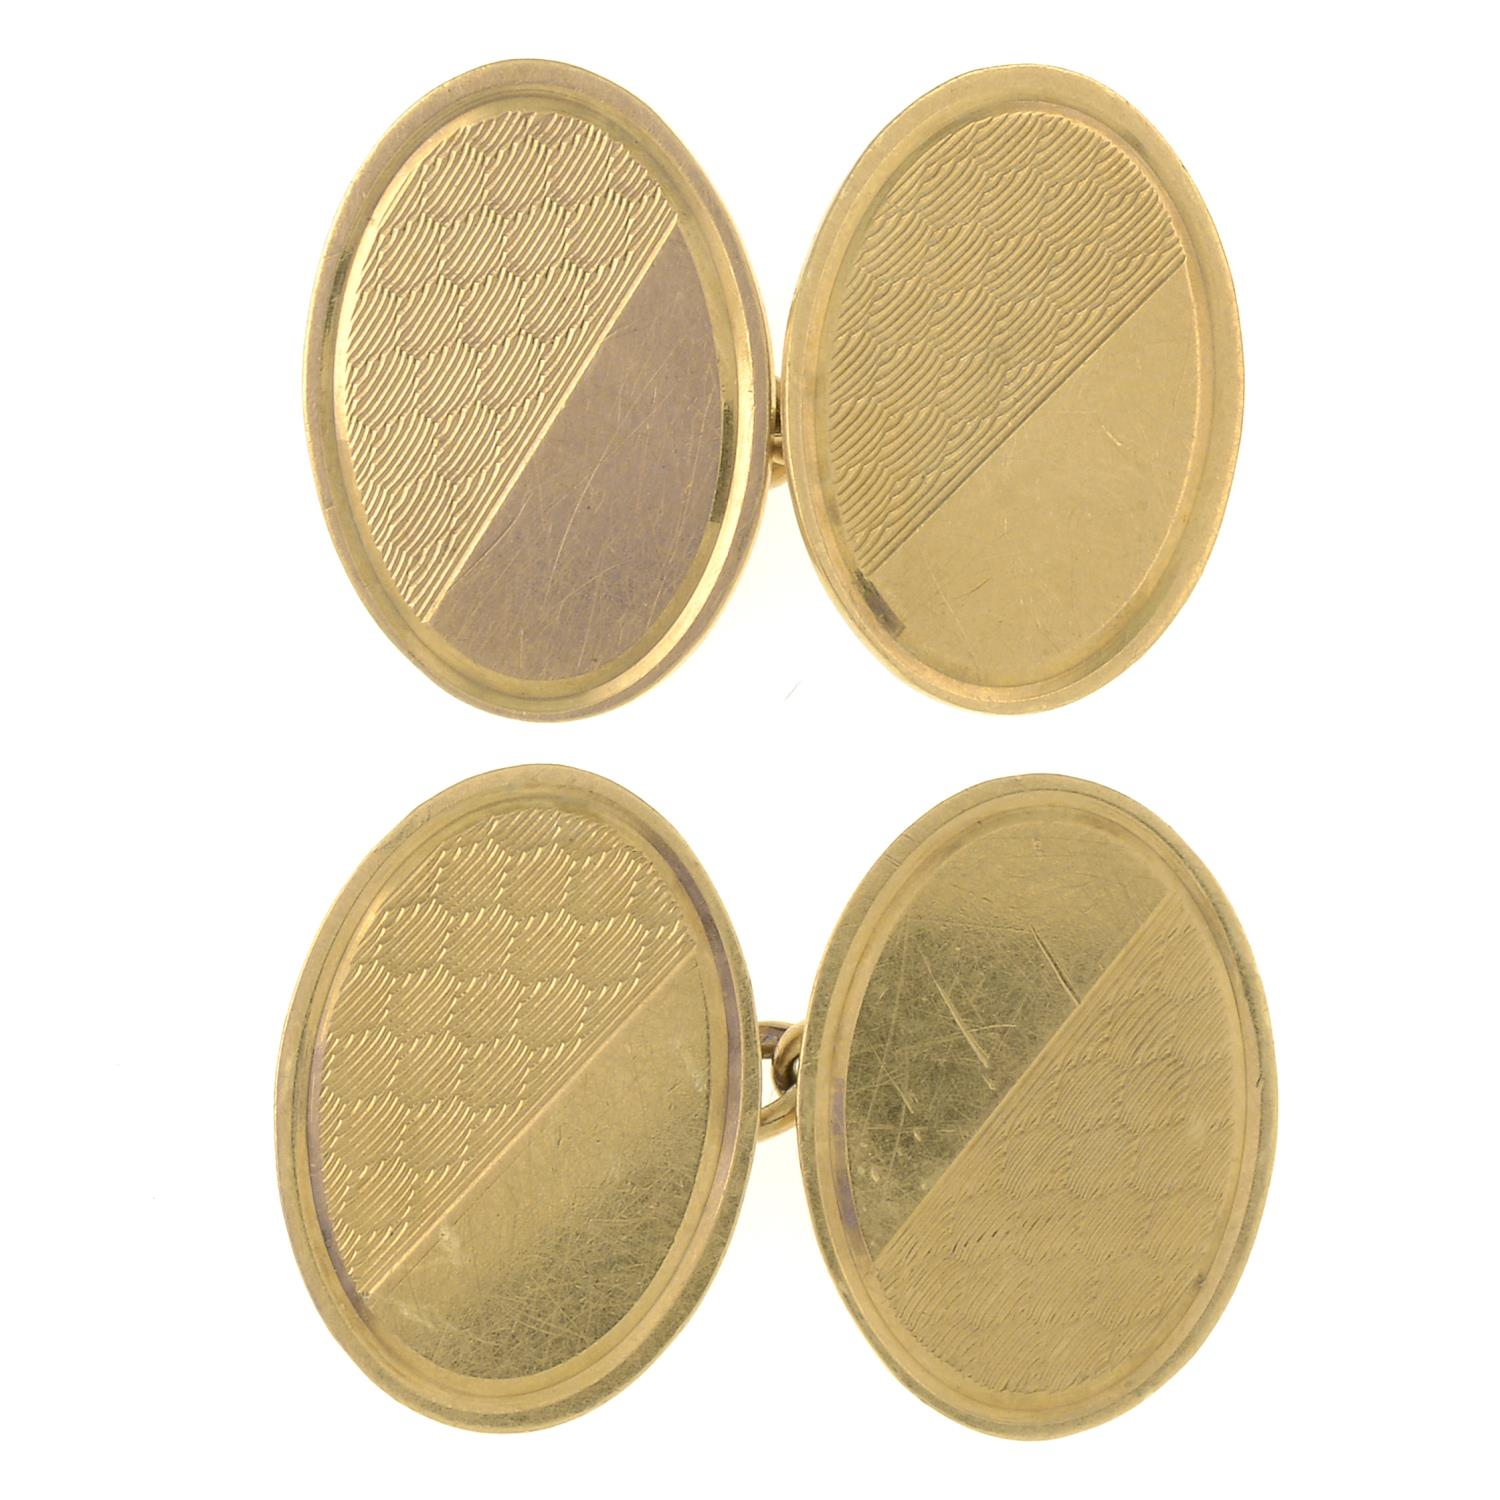 A pair of mid 19th century 9ct gold cufflinks.Hallmarks for Sheffield.Length of cufflink face